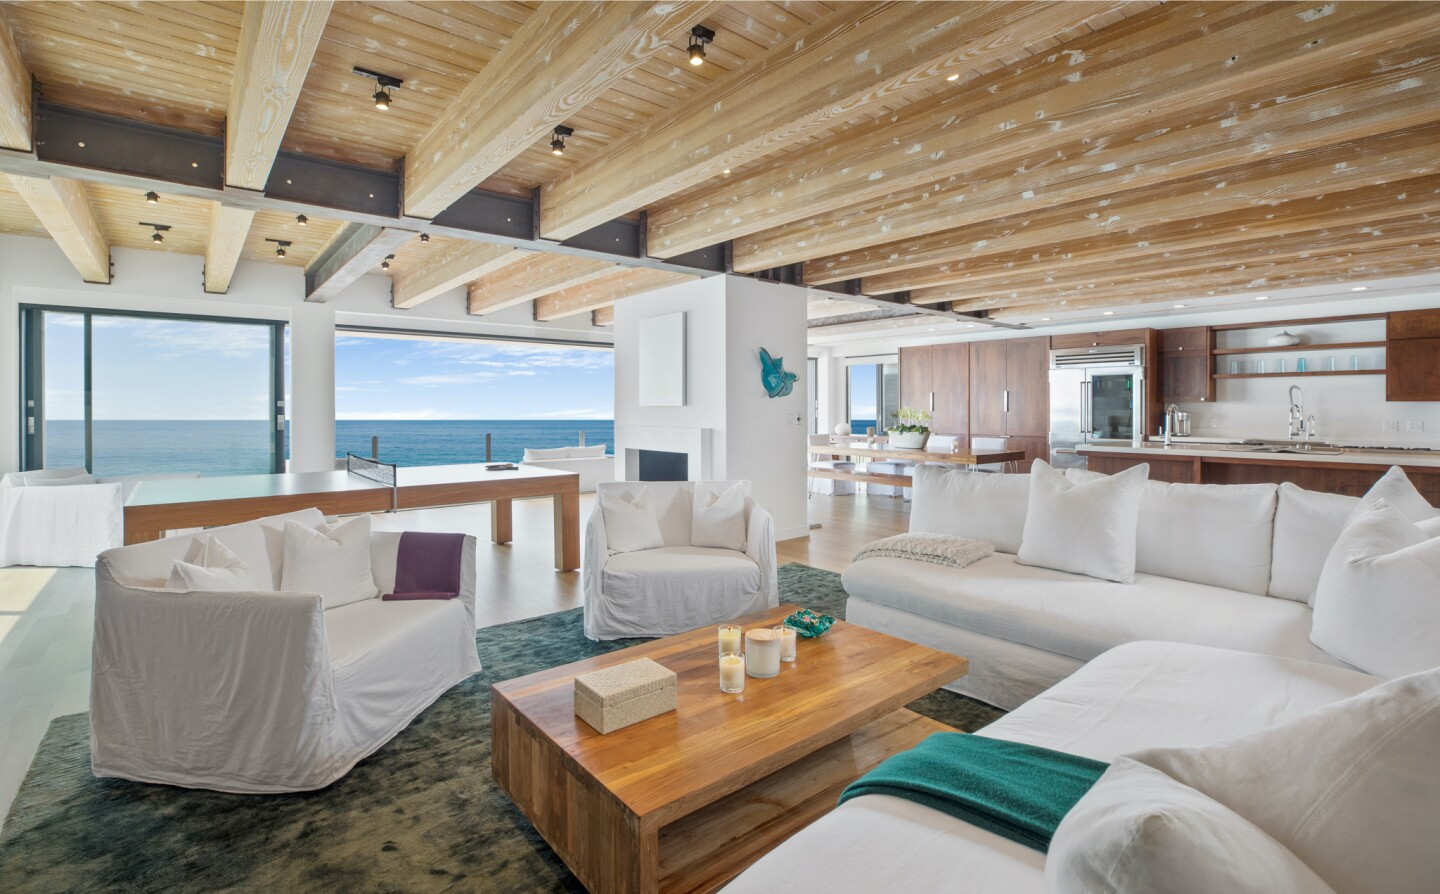 The architectural beach house expands to two levels of wood decks overlooking the ocean.